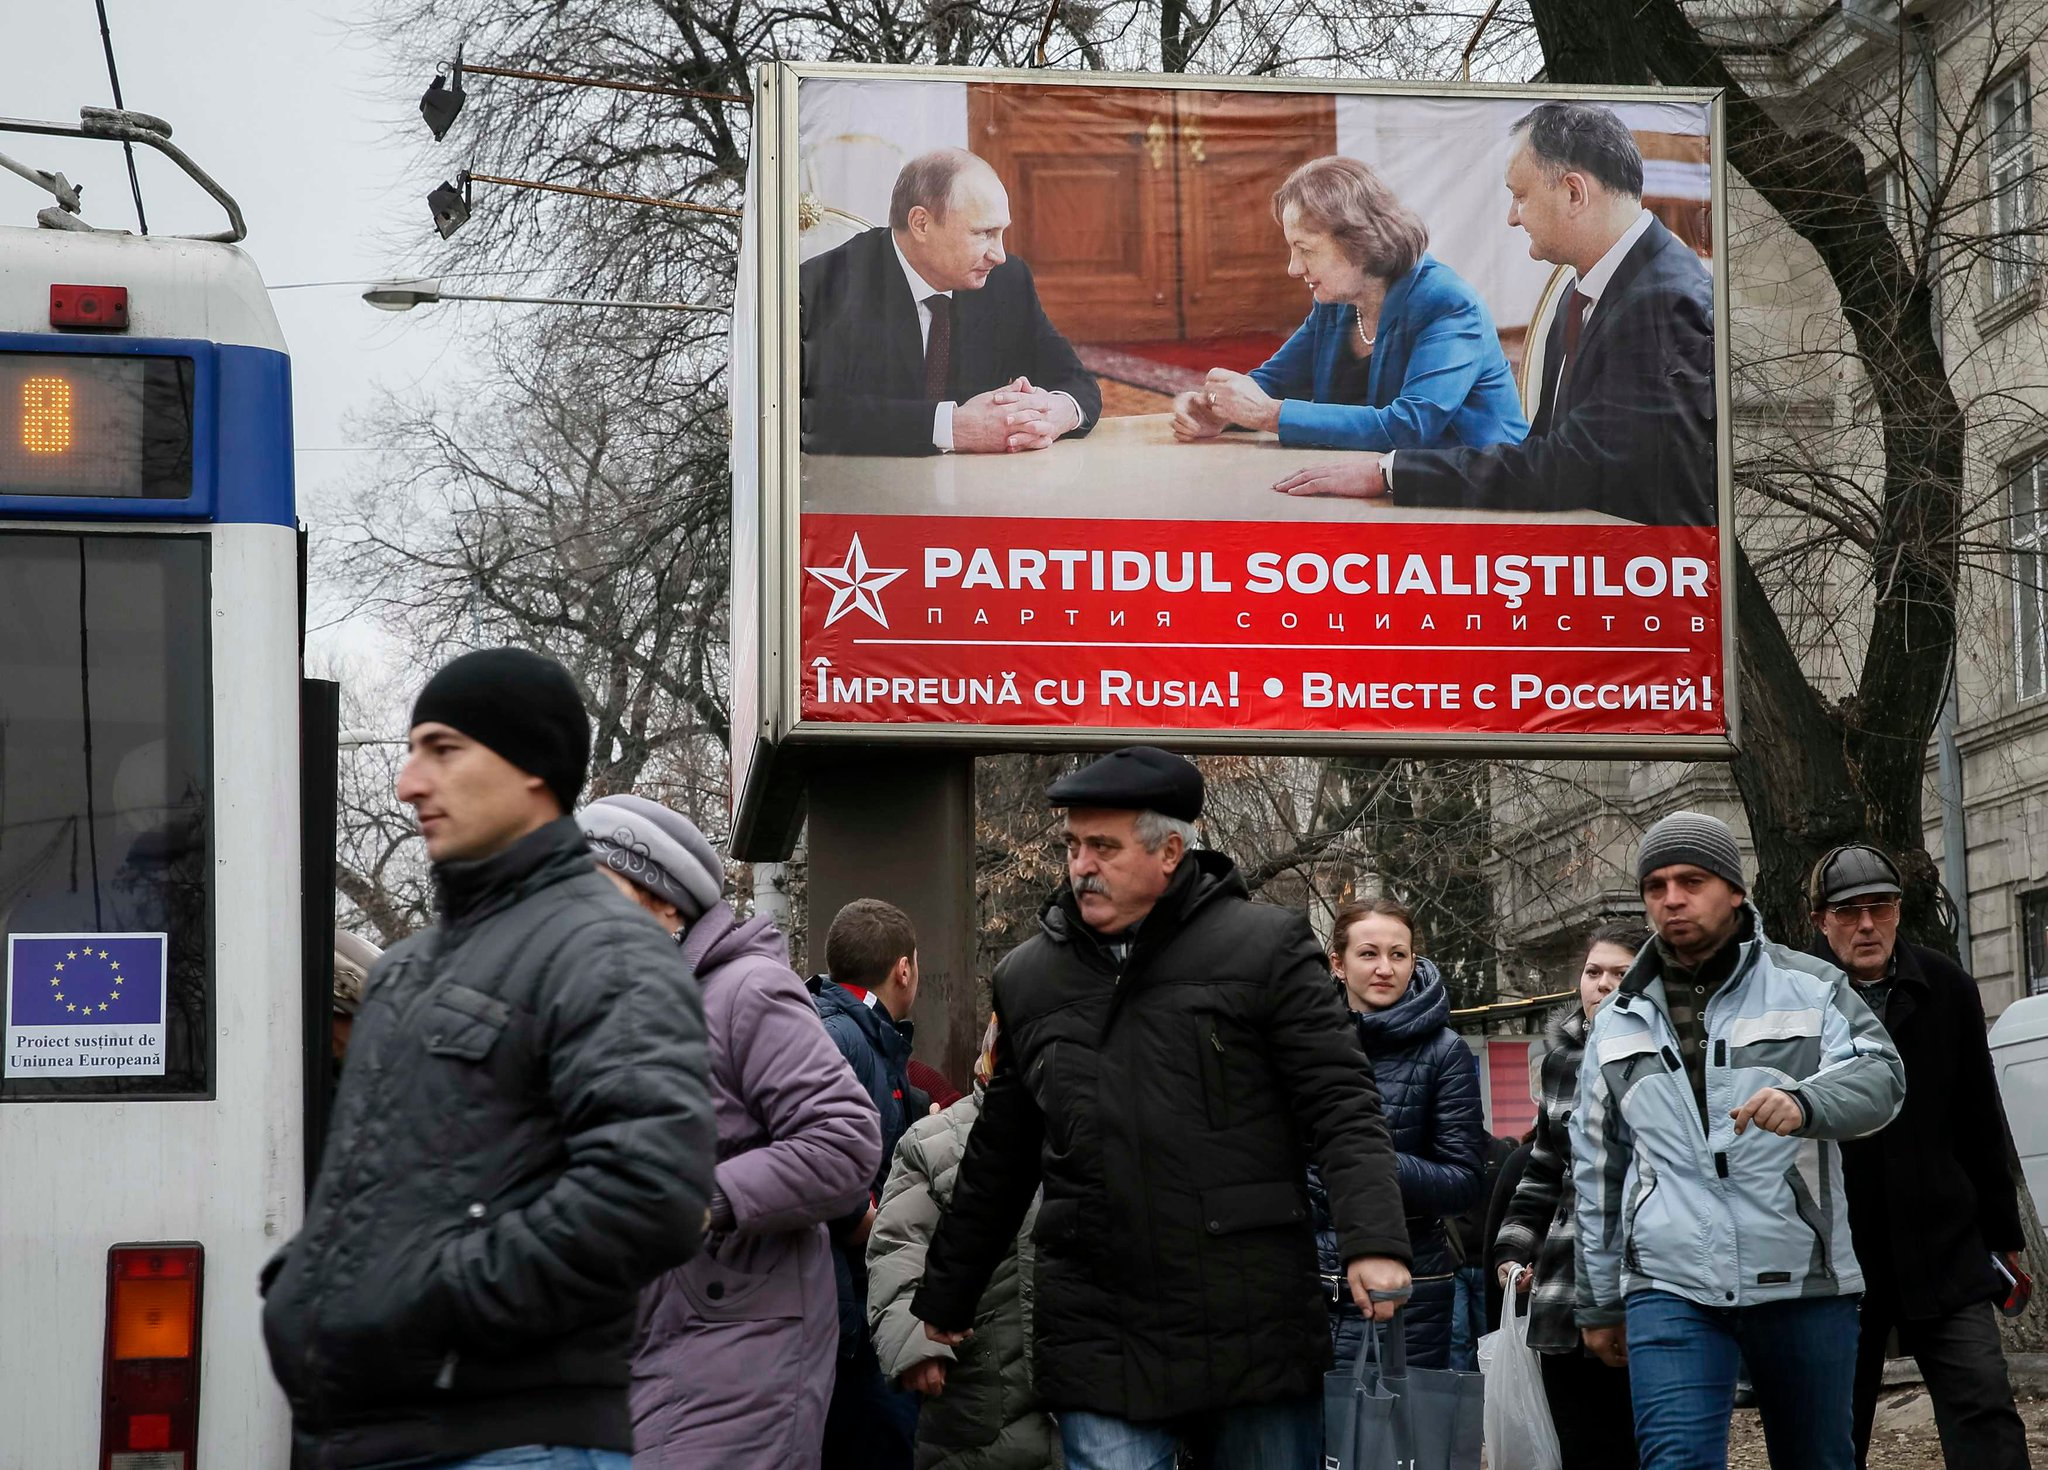 An election sign in Chisinau, Moldova, in 2014 showed representatives of the anti-European Socialist Party with President Vladimir V. Putin of Russia.